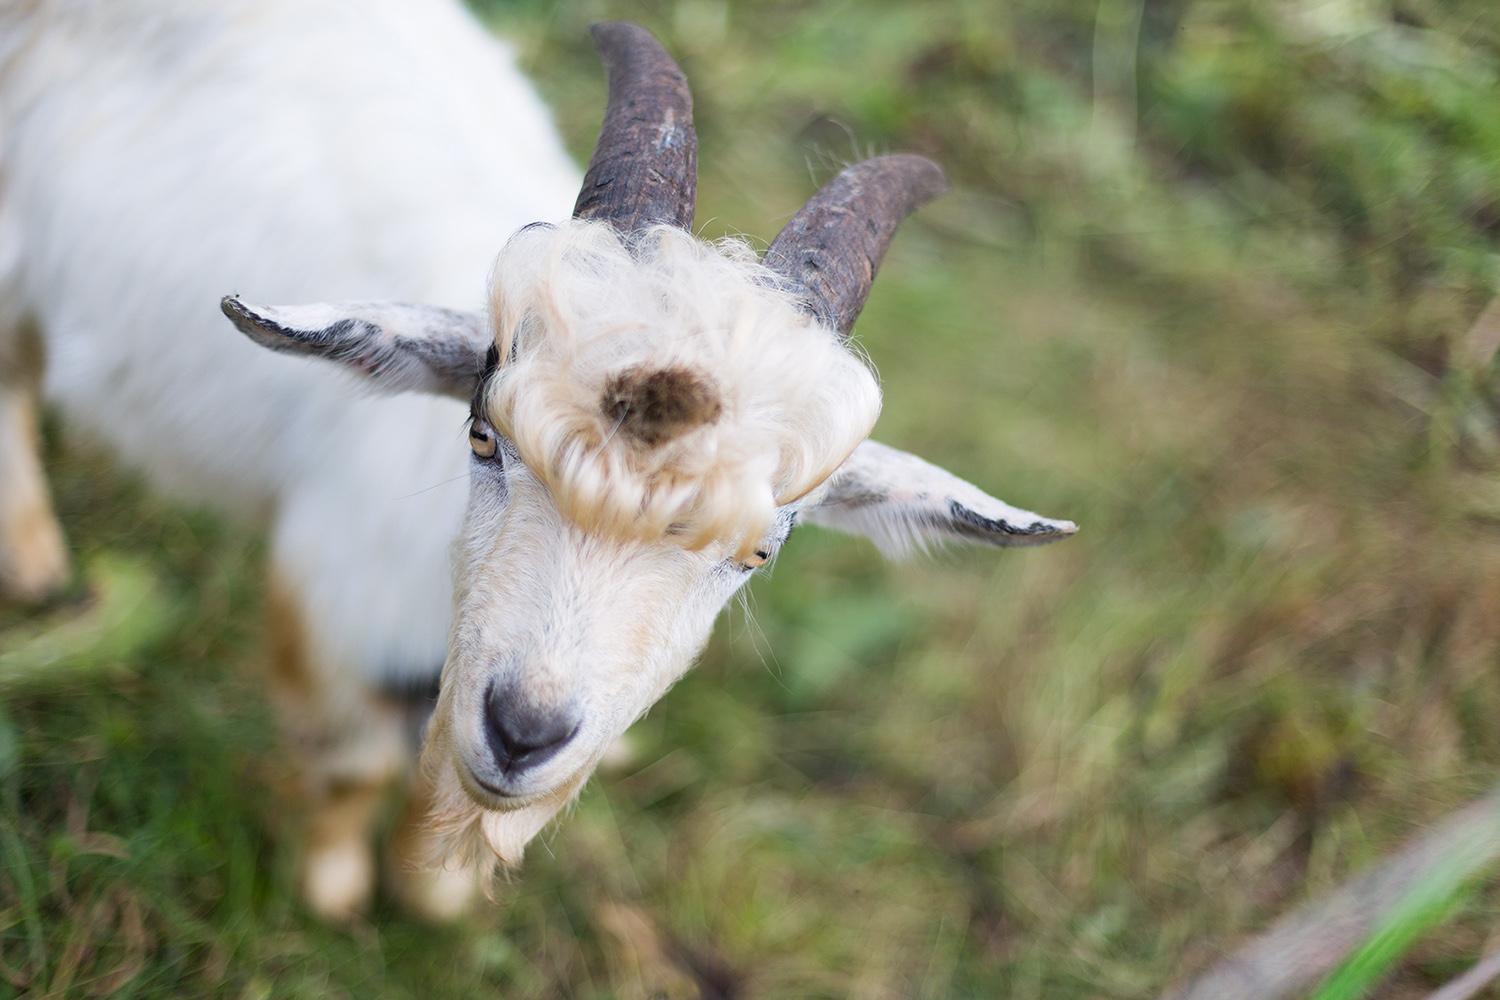 Portrait photography story and documentation of bavarian Stefan Mayr and his goats and dog